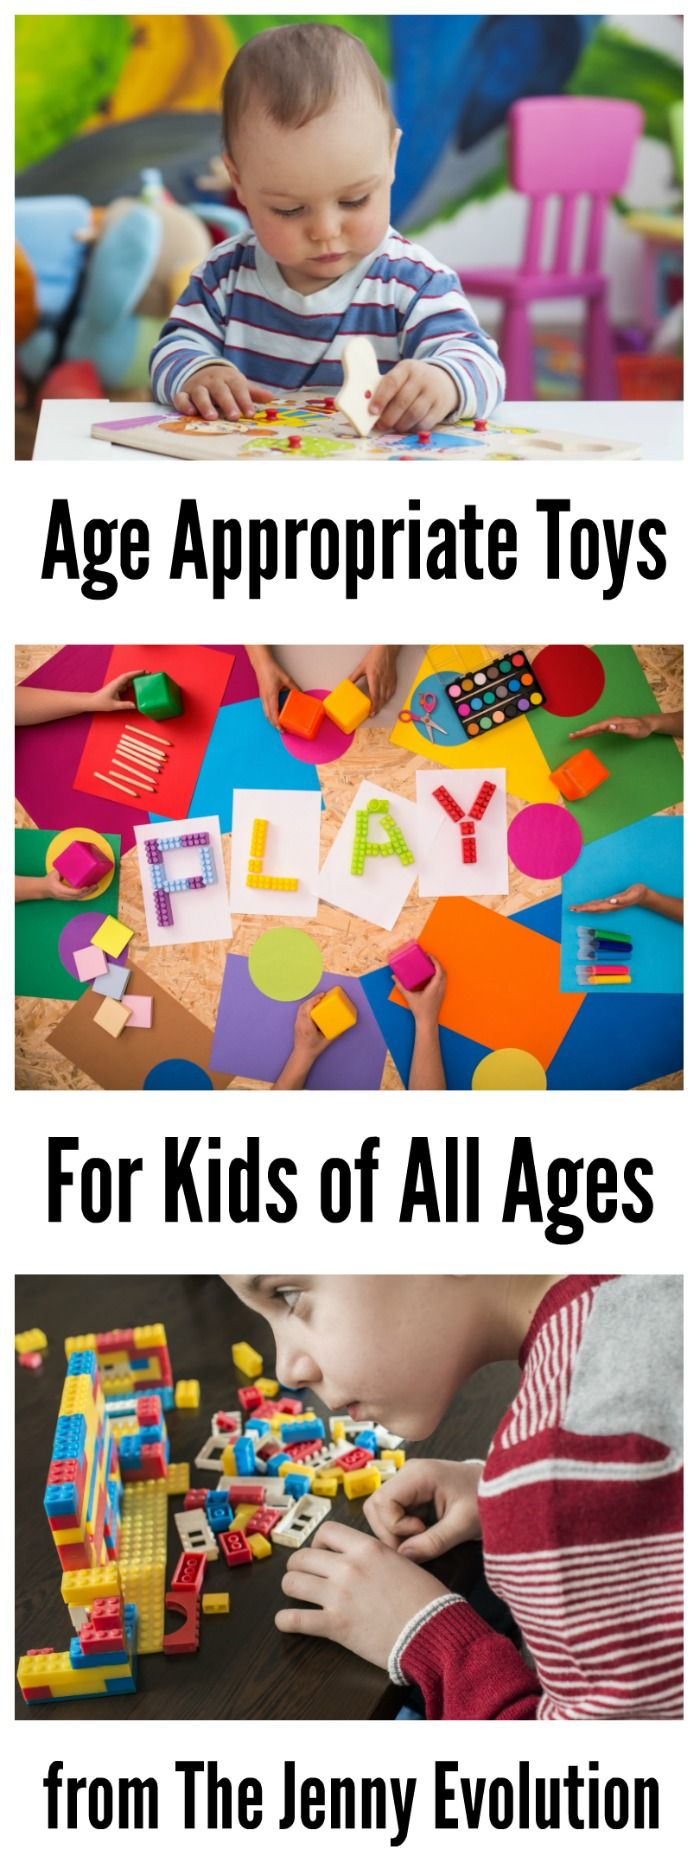 Age Appropriate Toys for All Ages - Perfect for the new baby in your life!